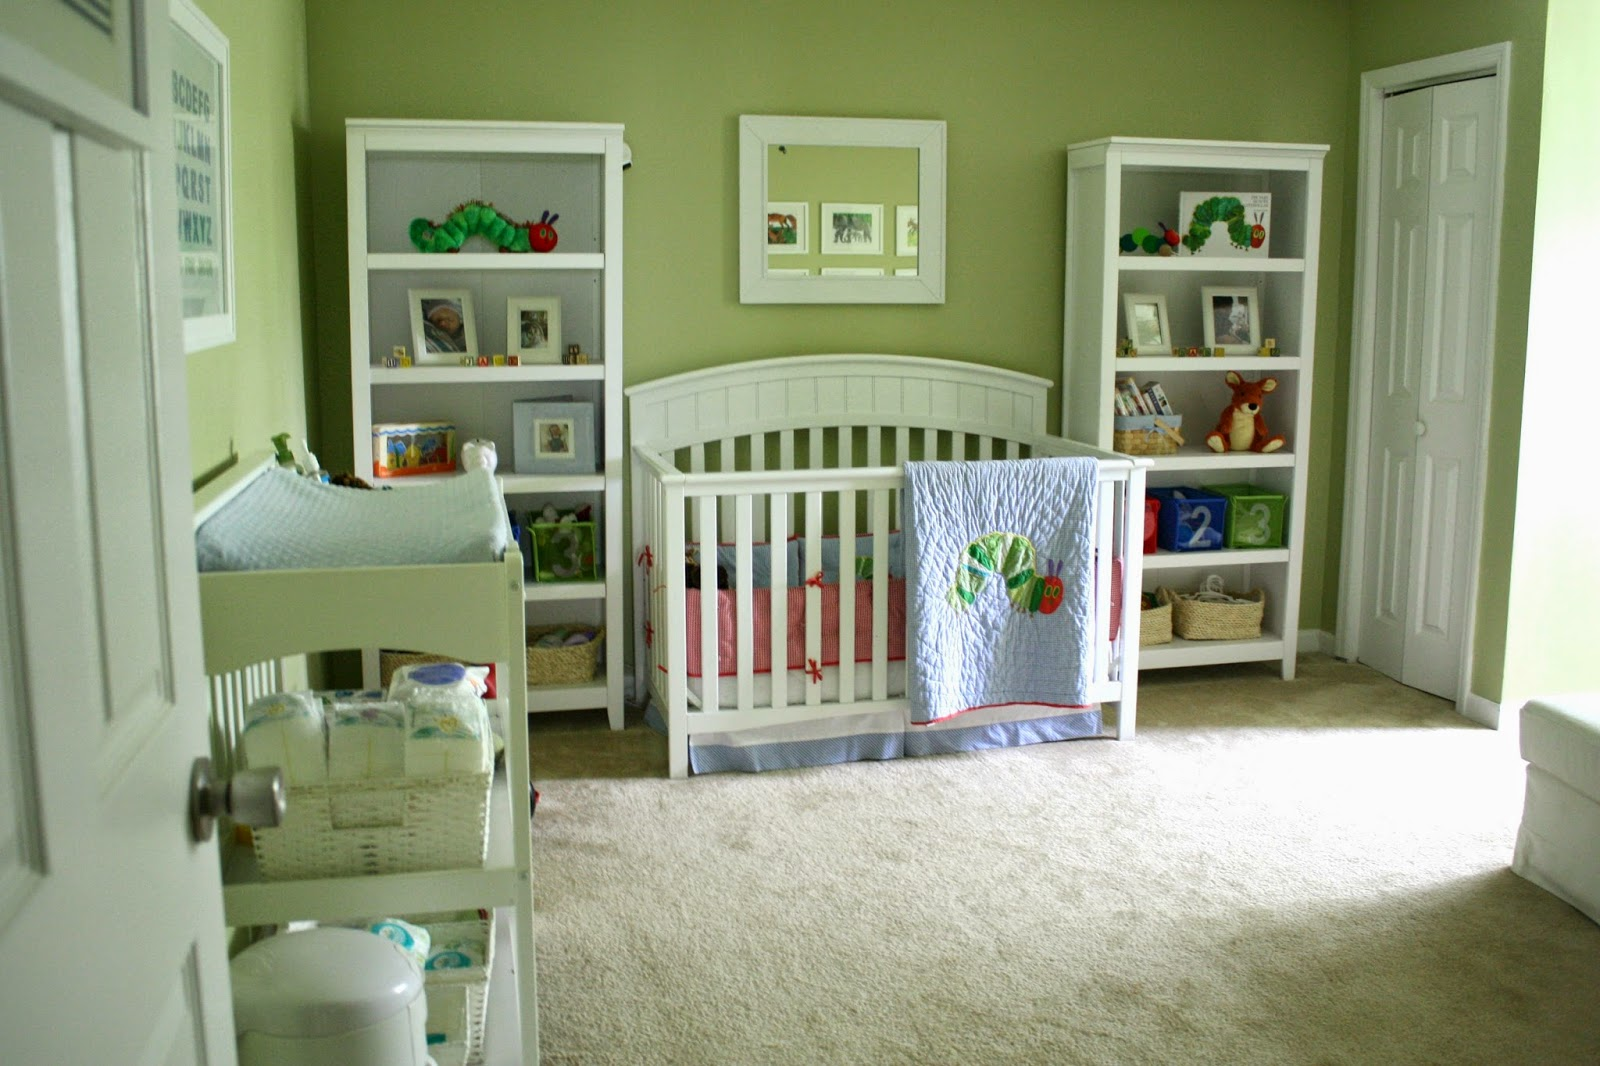 http://www.livealittlewilderblog.com/2013/08/the-nursery-now.html